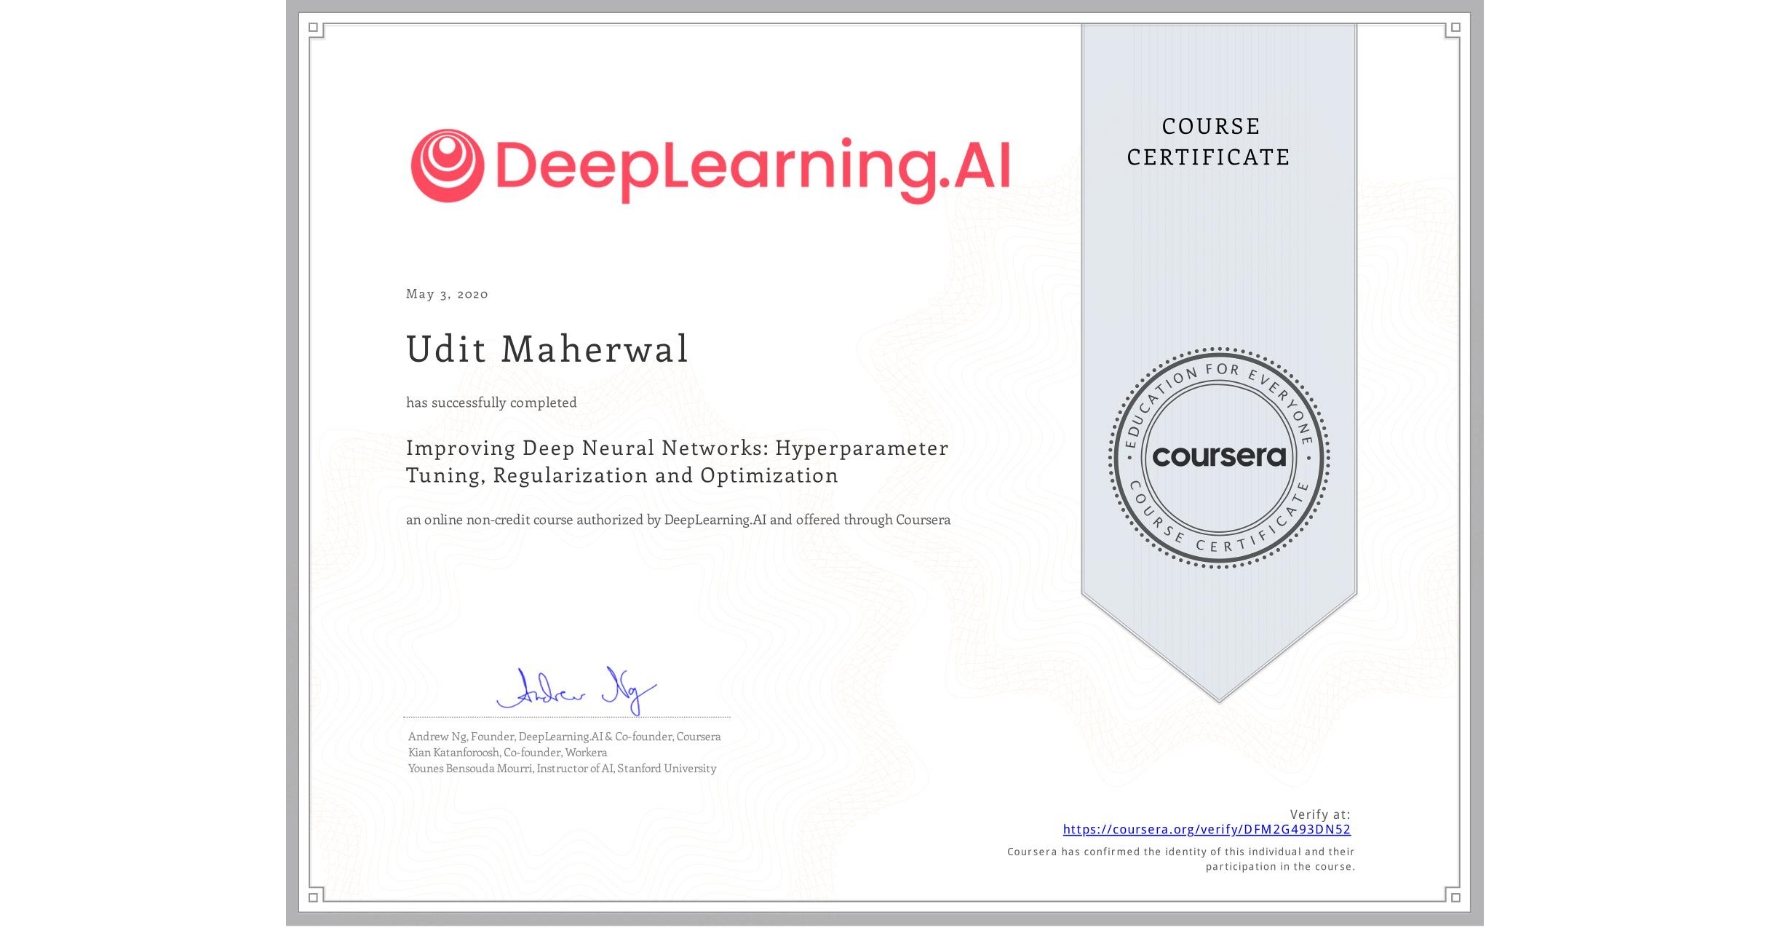 View certificate for Udit Maherwal, Improving Deep Neural Networks: Hyperparameter tuning, Regularization and Optimization, an online non-credit course authorized by DeepLearning.AI and offered through Coursera